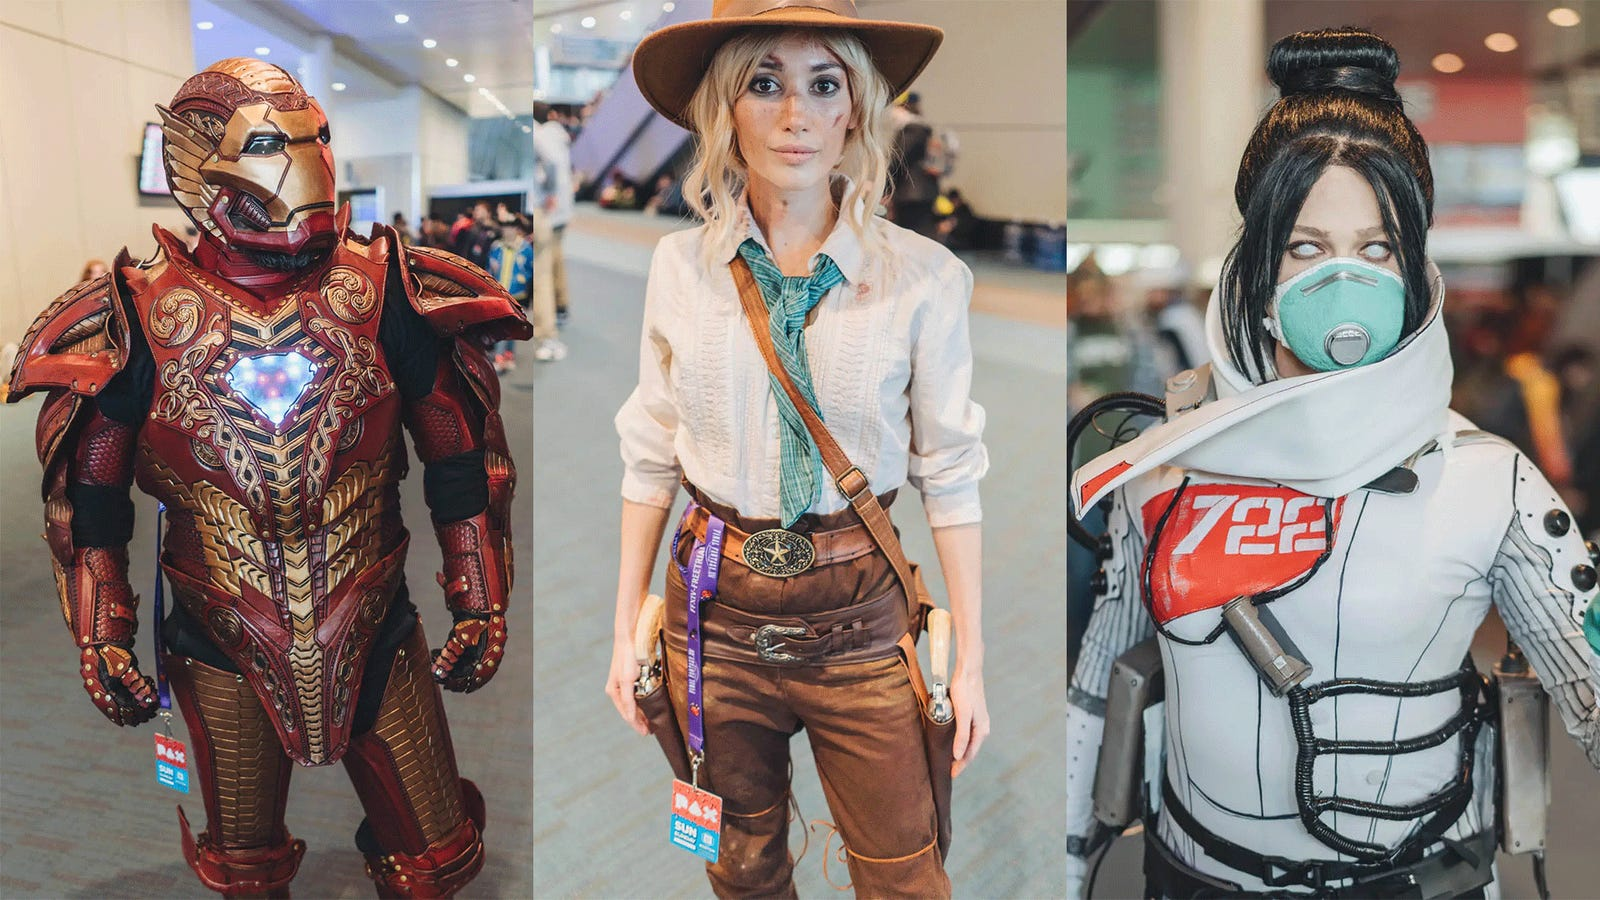 Our Favorite Cosplay From PAX East 2019